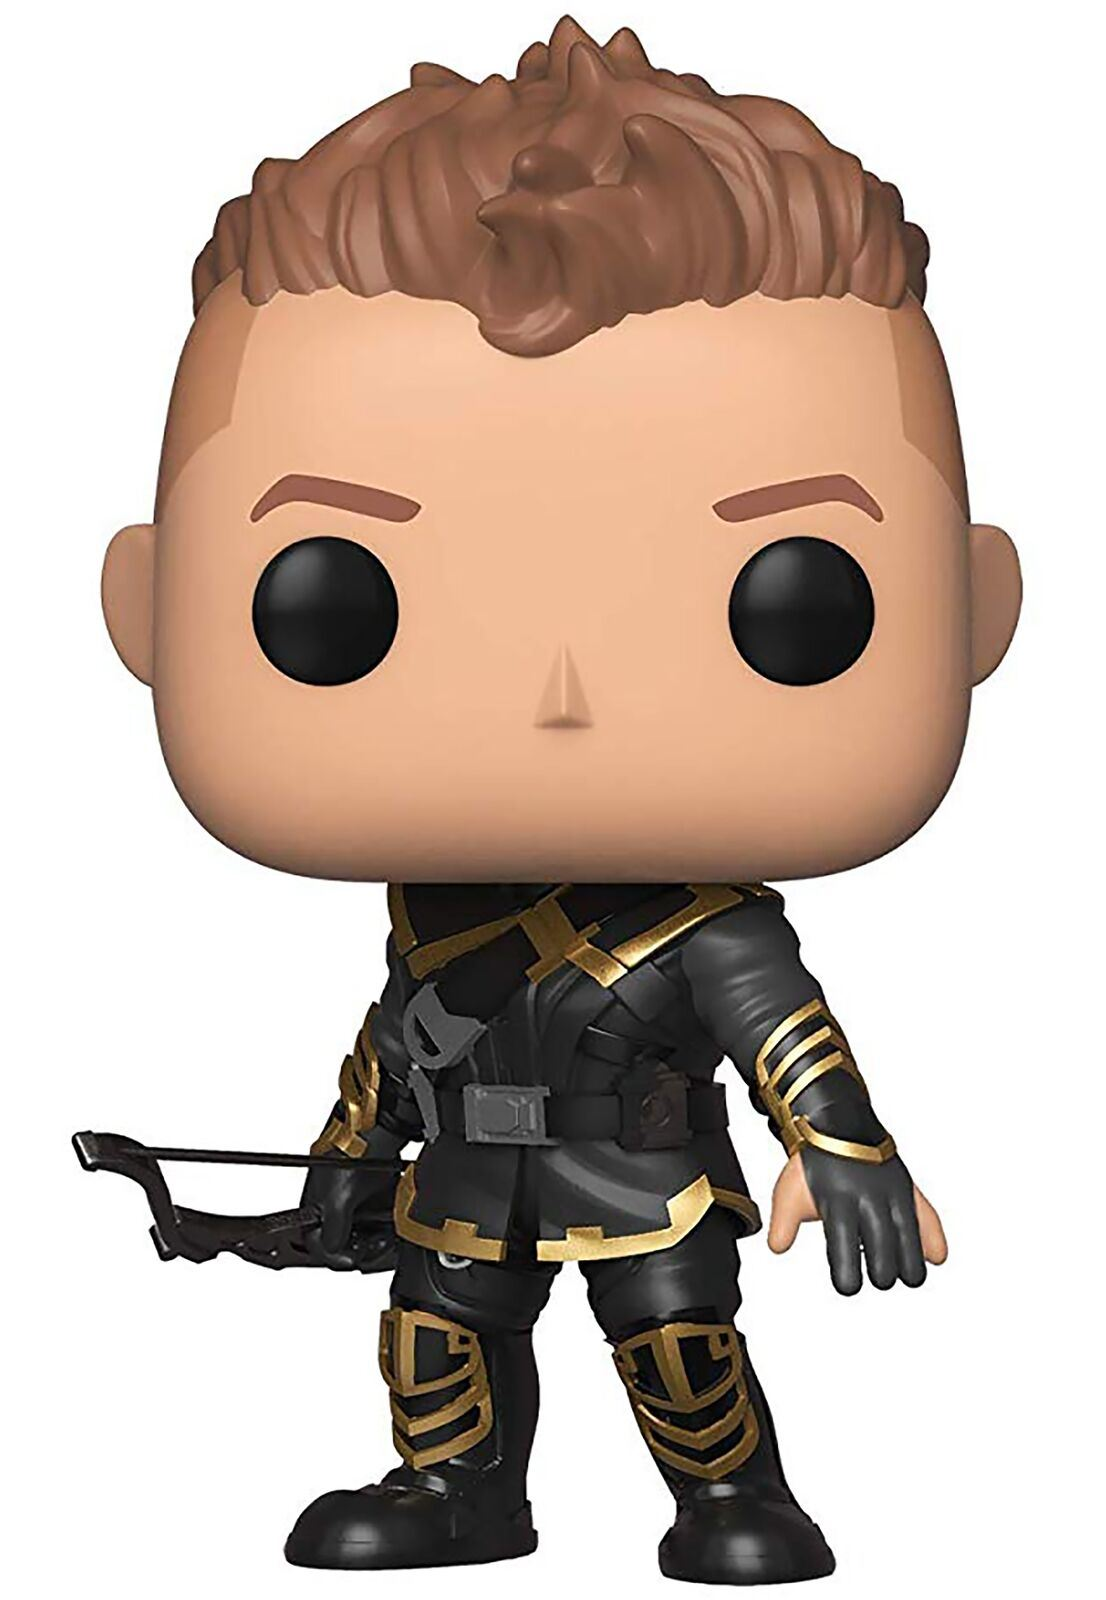 Funko-Endgame-Pop-Marvel-Avengers-Endgame-Vinyl-Collectables-Figures thumbnail 14